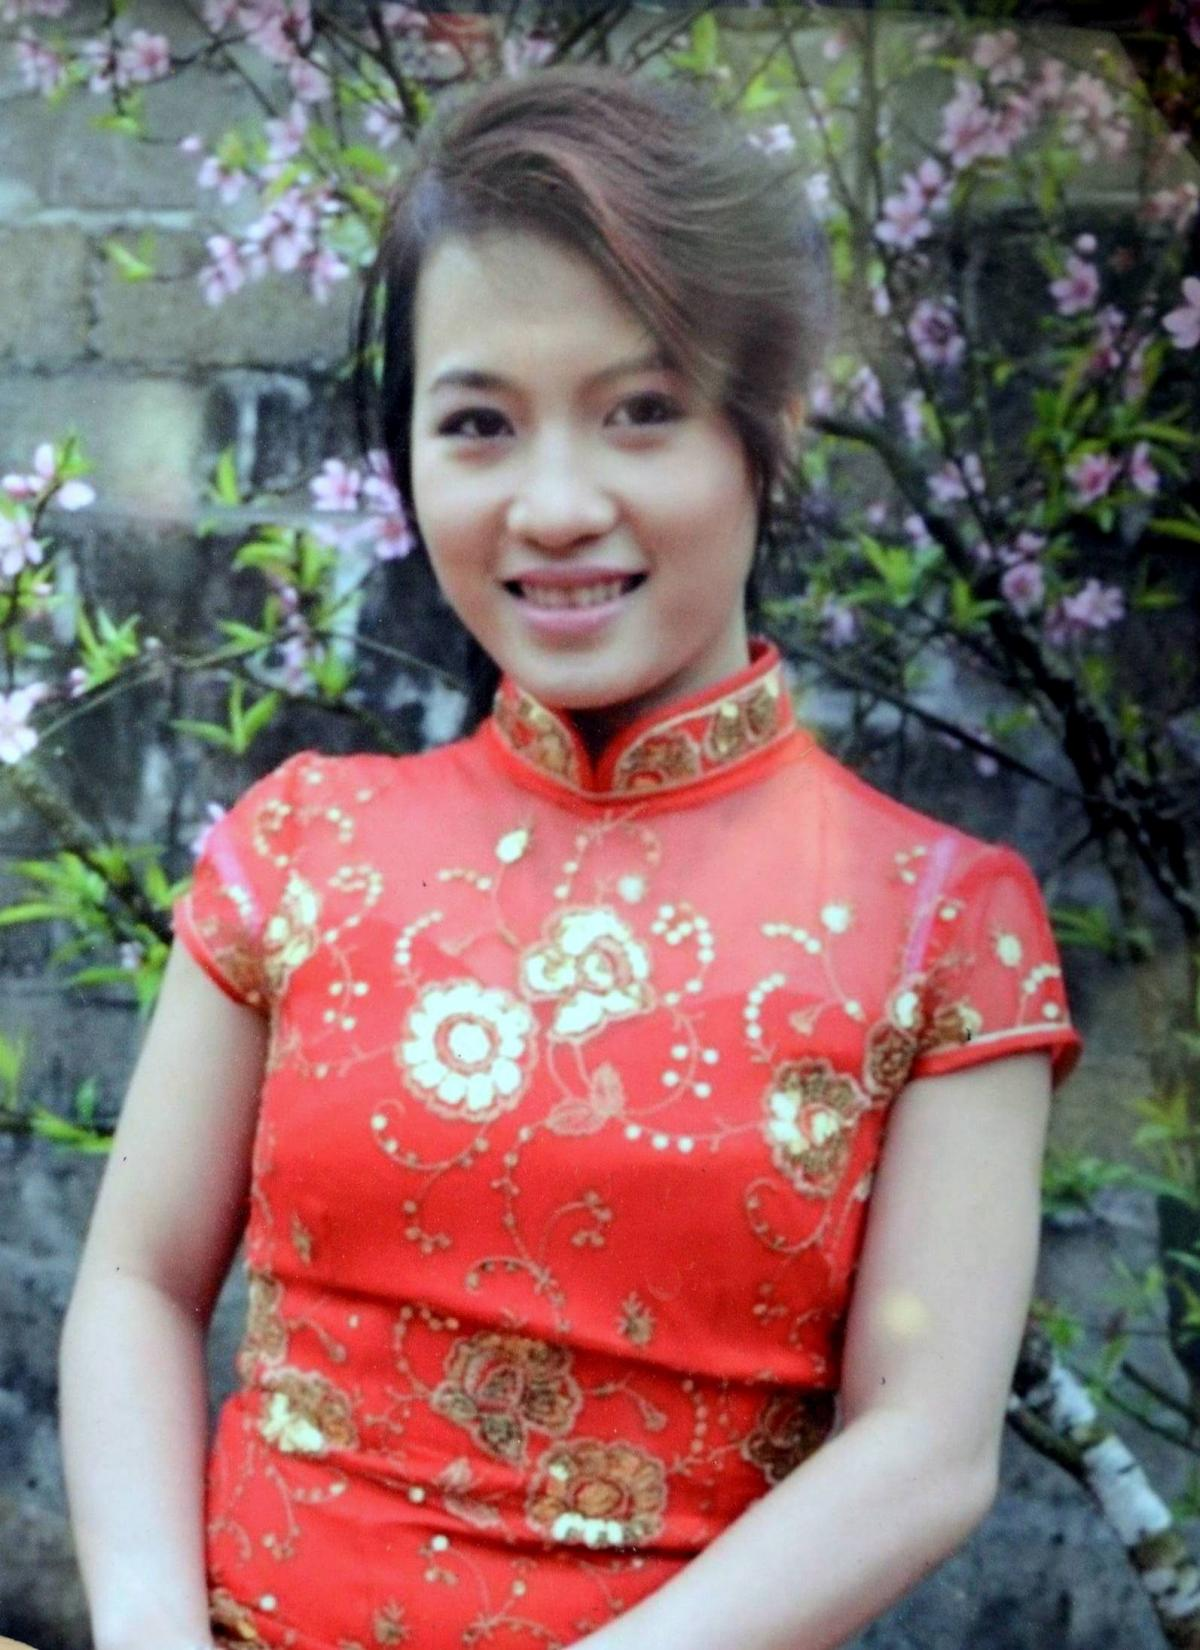 Men accused of torturing raping and murdering vietnamese woman had men accused of torturing raping and murdering vietnamese woman had killed before jury told ccuart Gallery